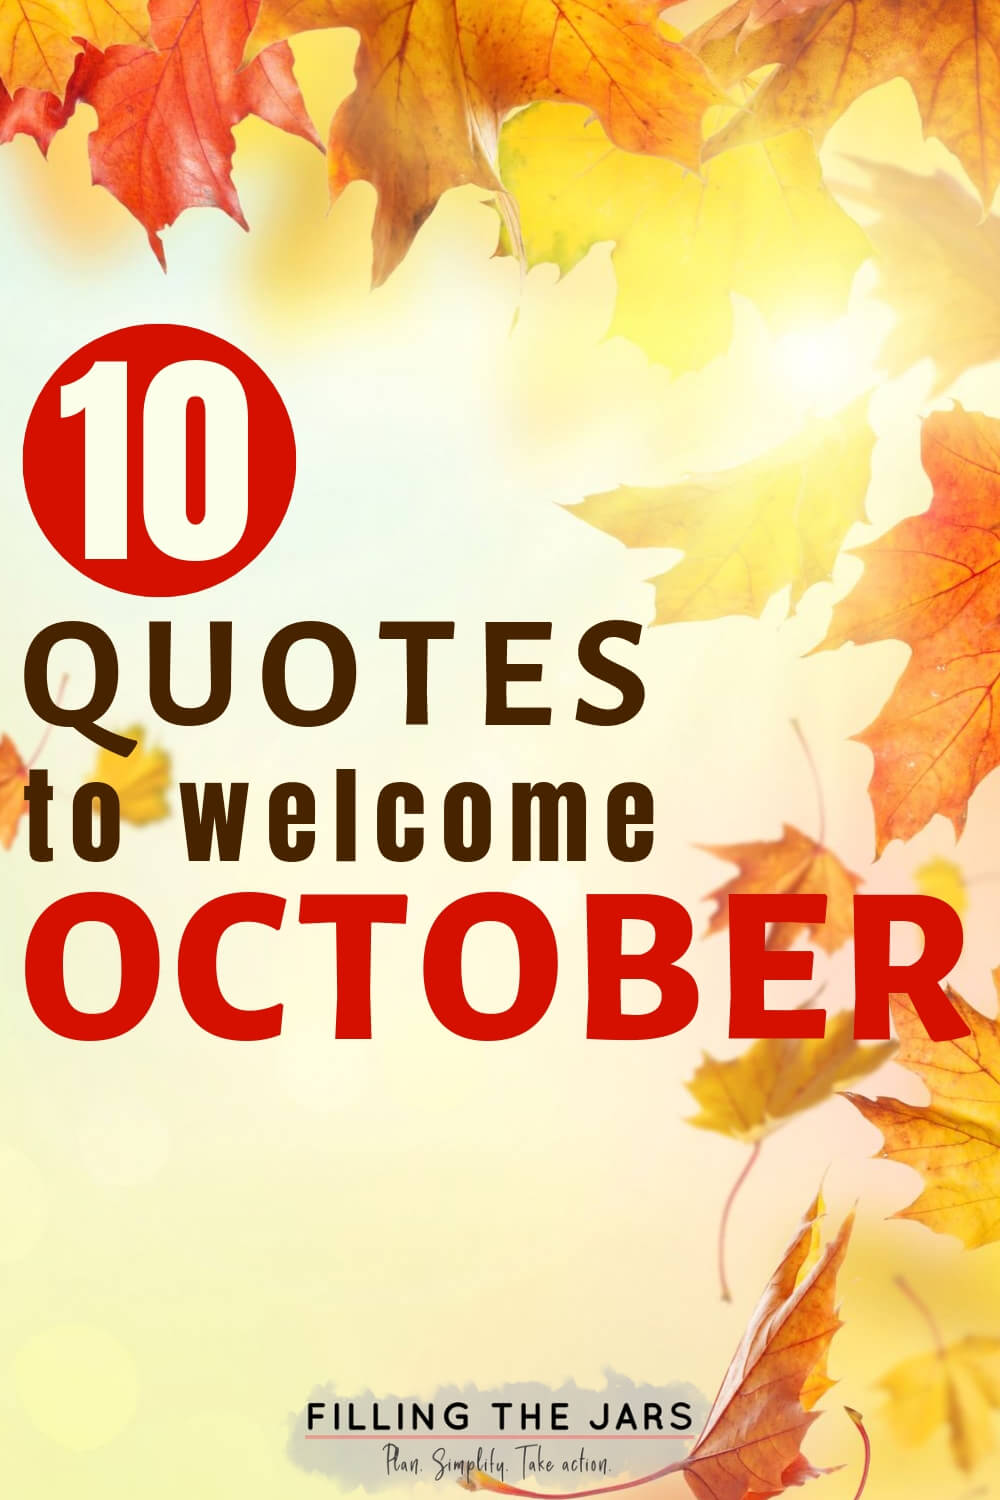 swirling autumn leaves background with text overlay 10 quotes to welcome october